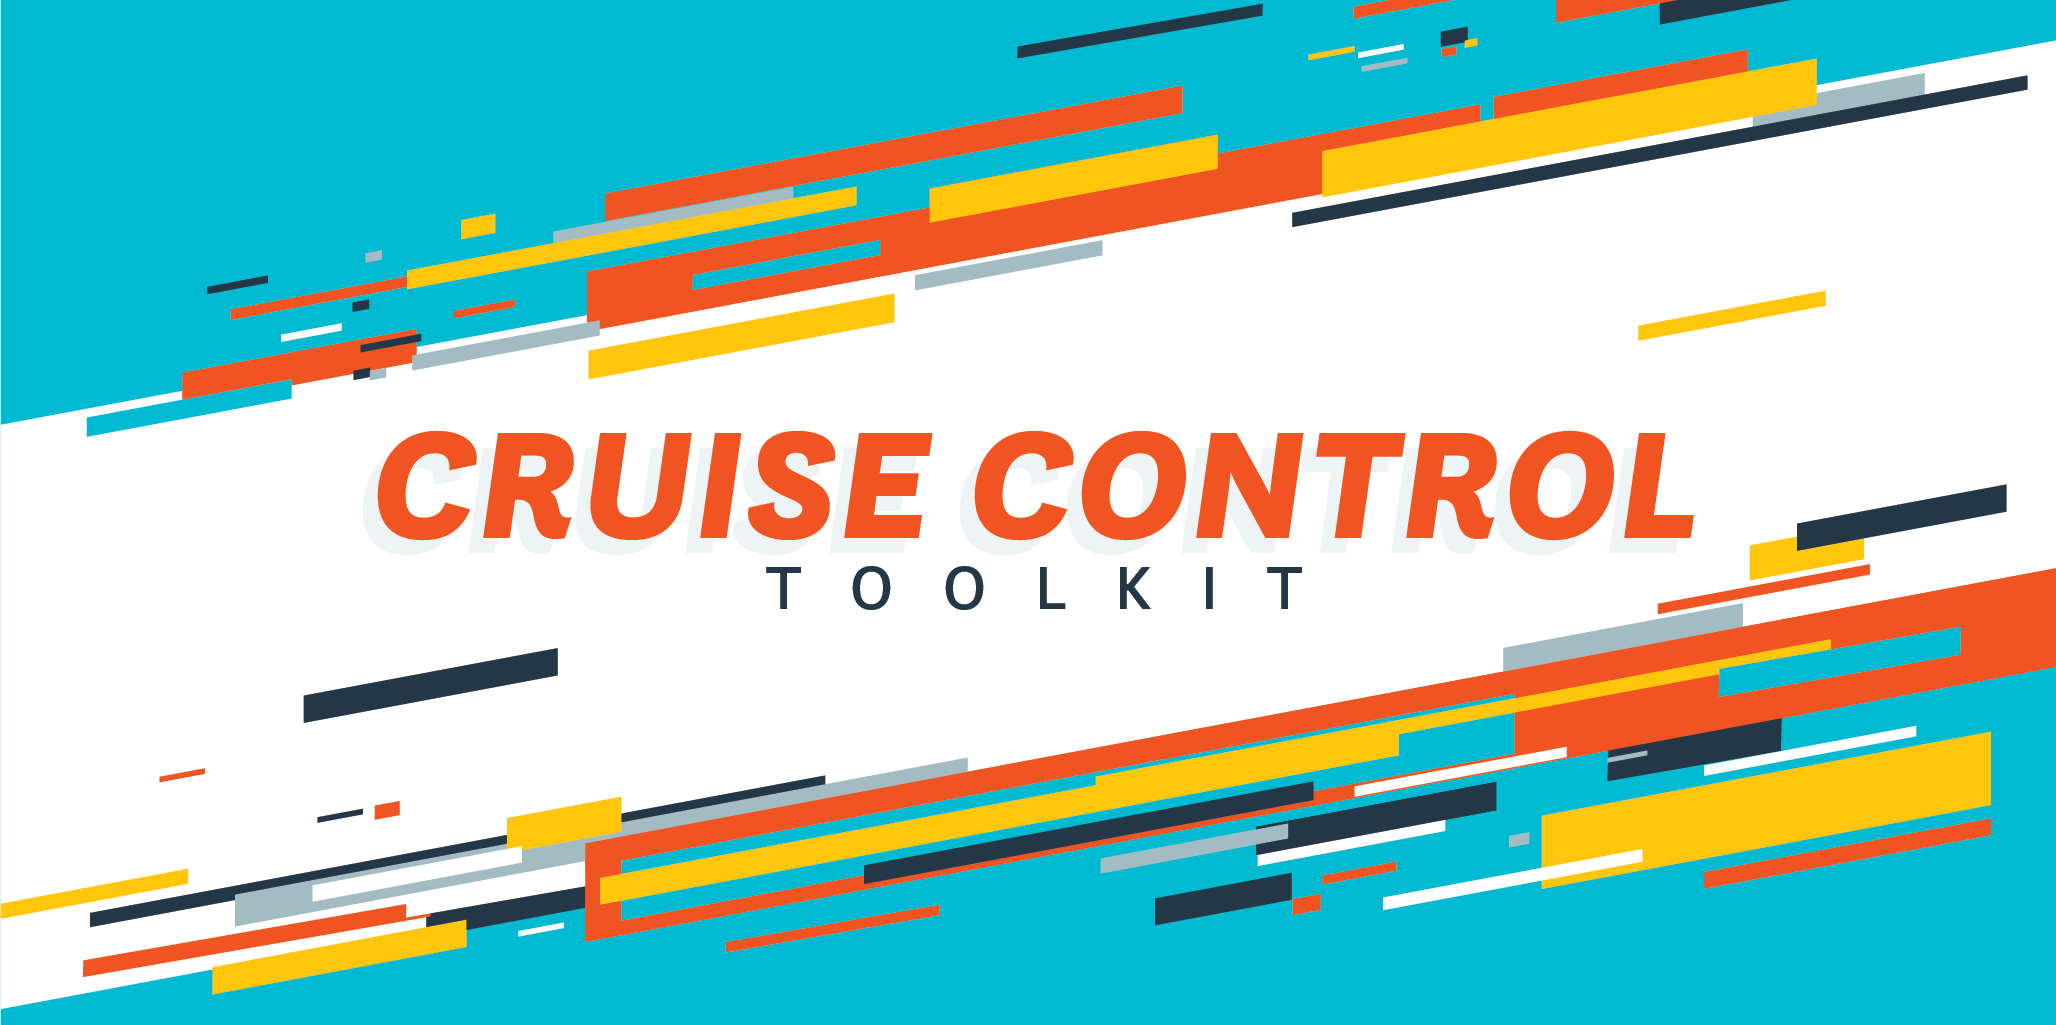 MADE_Toolkit_Email_ToolkitTitles_Cruise Control